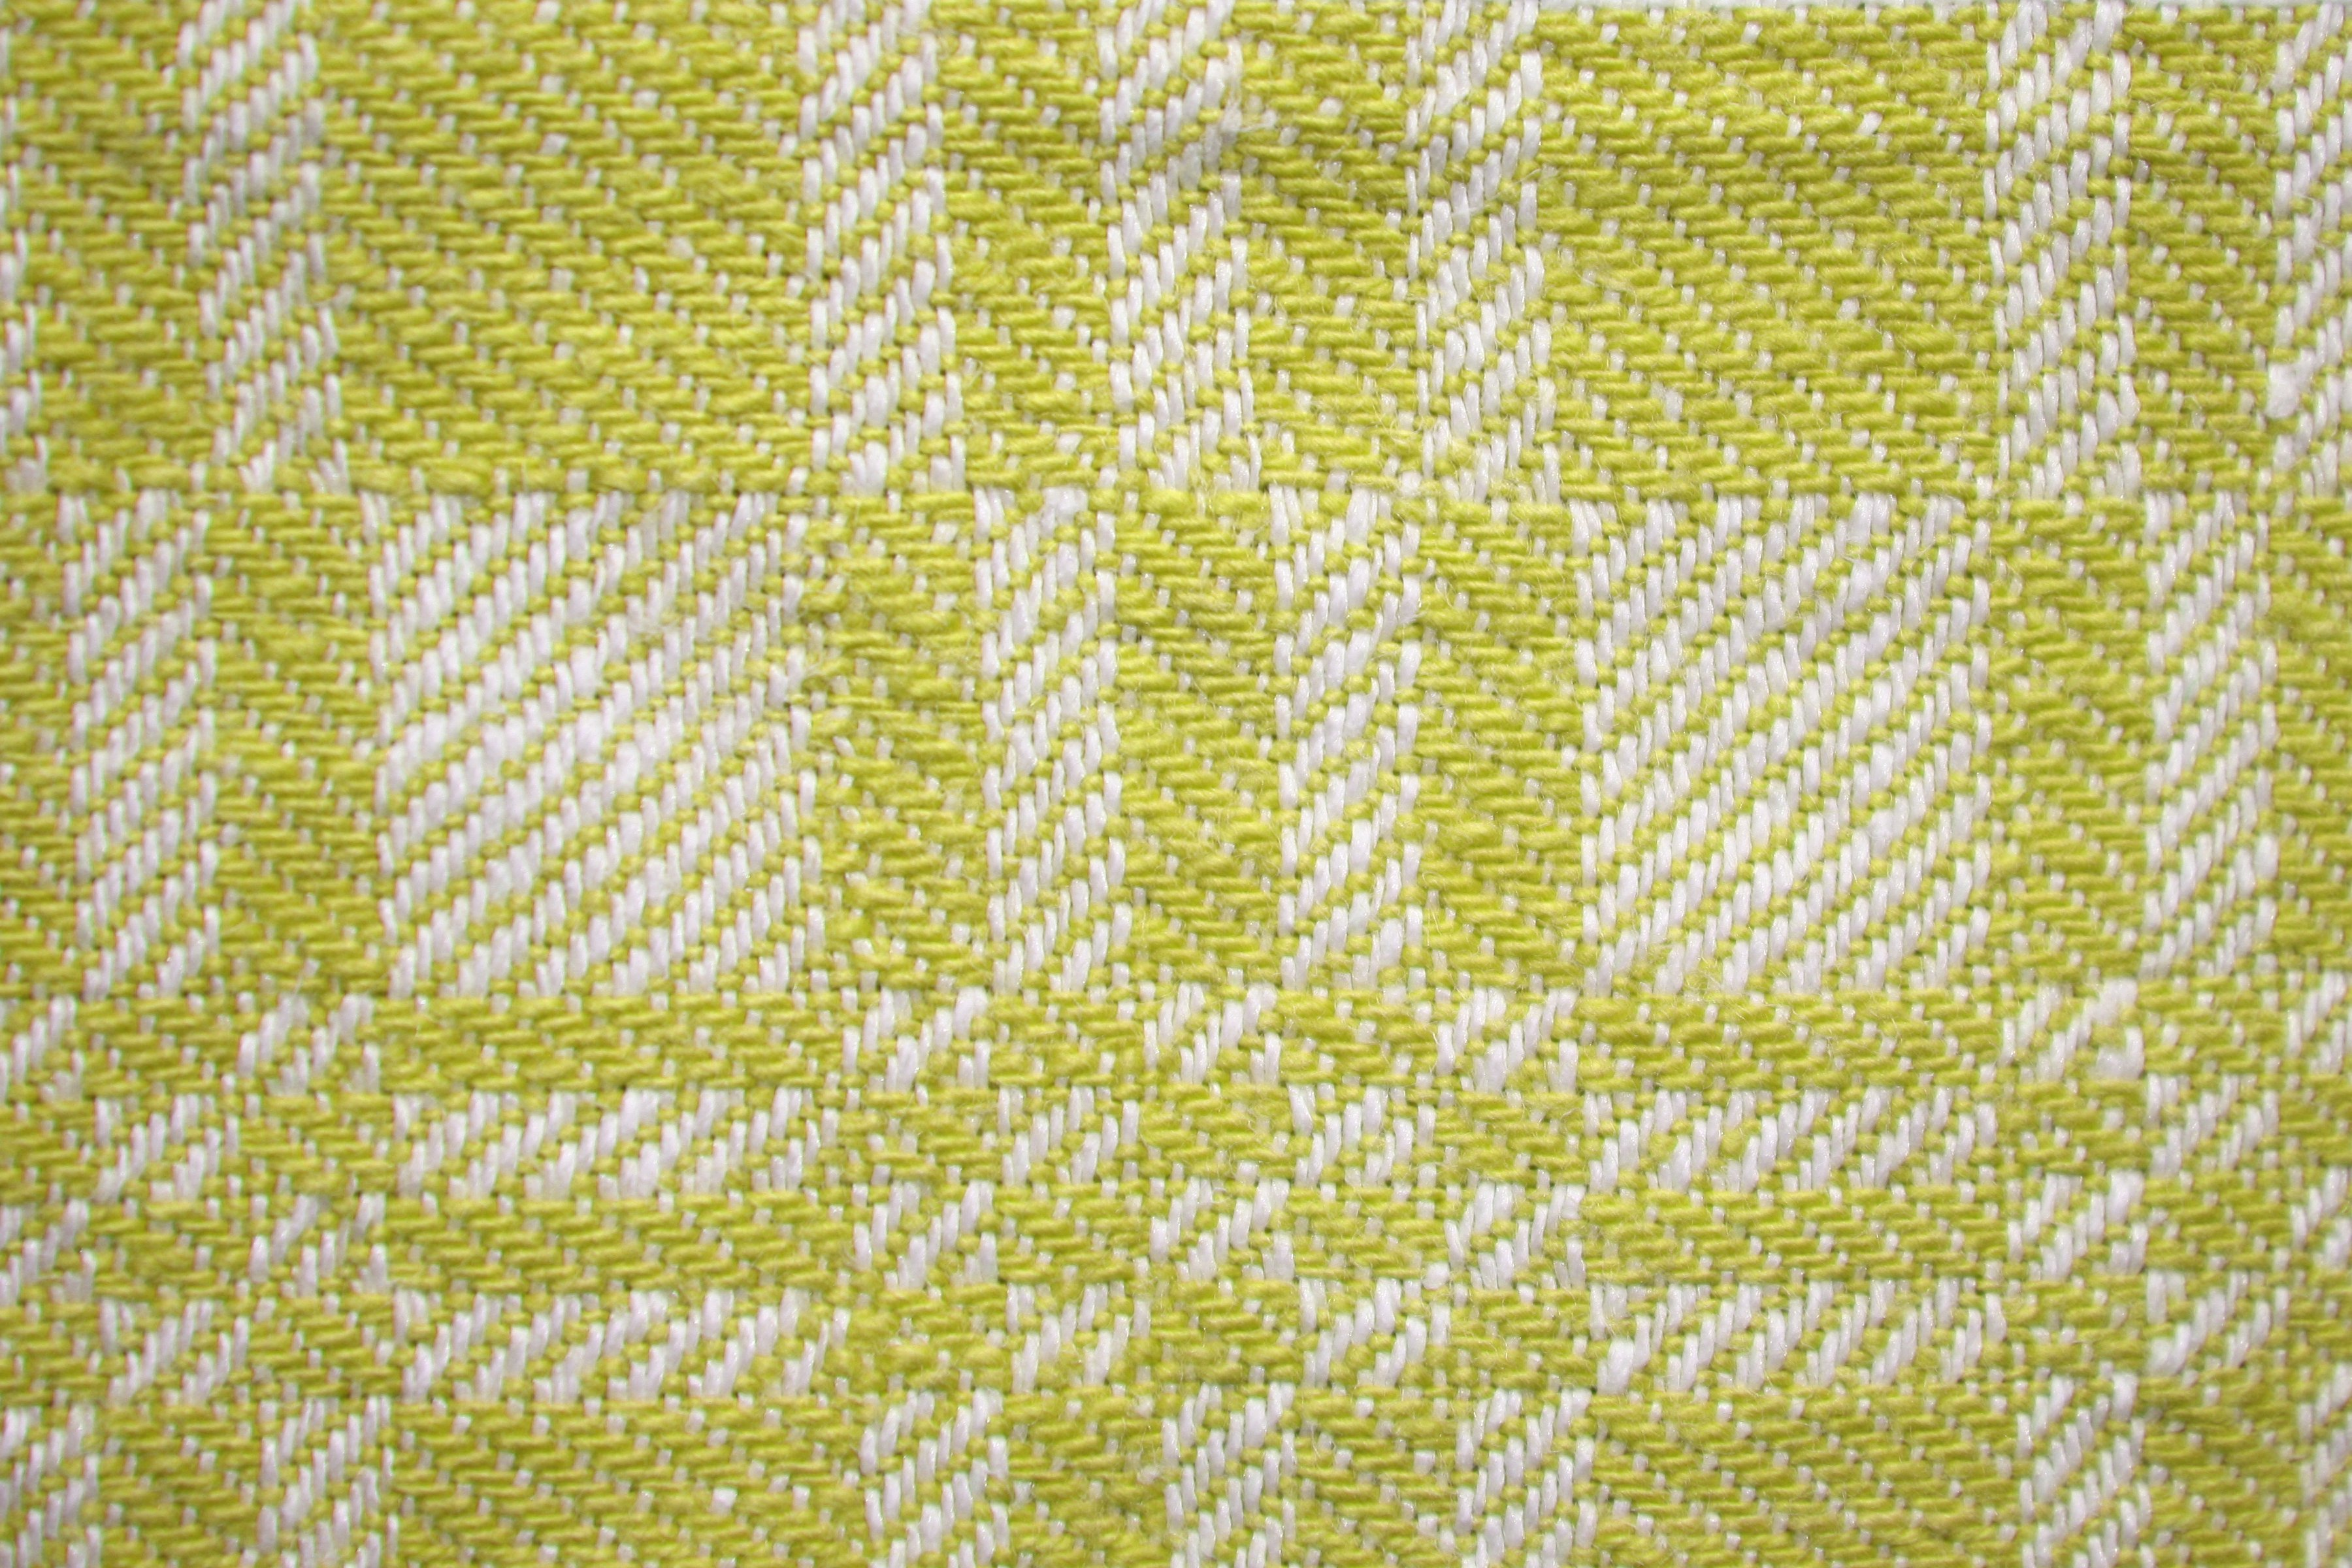 Yellow and White Woven Fabric Texture with Squares Pattern Picture ...